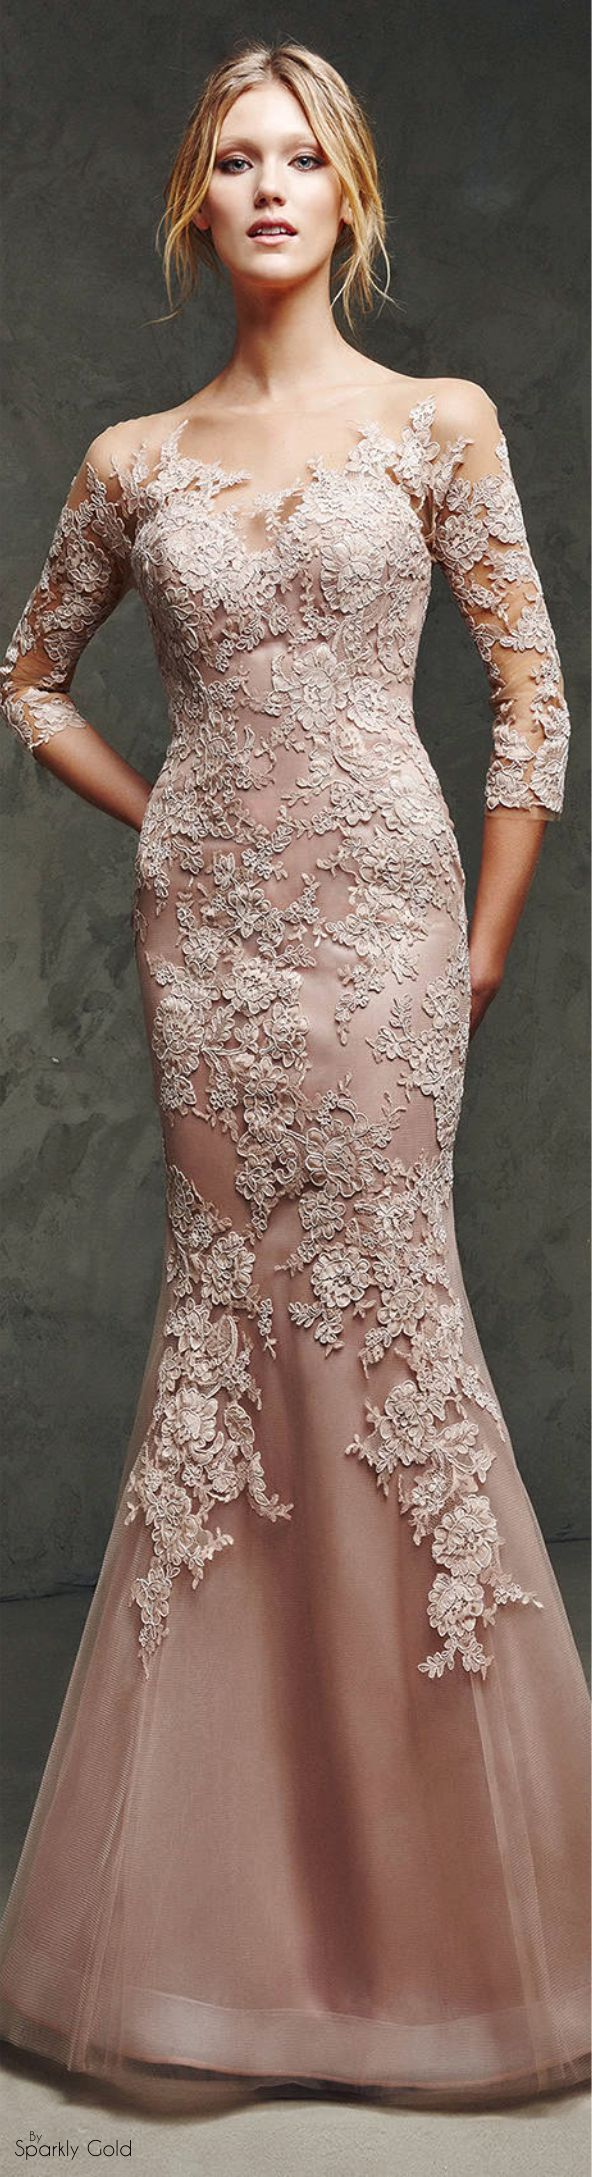 Pronovias 2016 lace maxi dress women fashion outfit clothing style apparel @roressclothes closet ideas